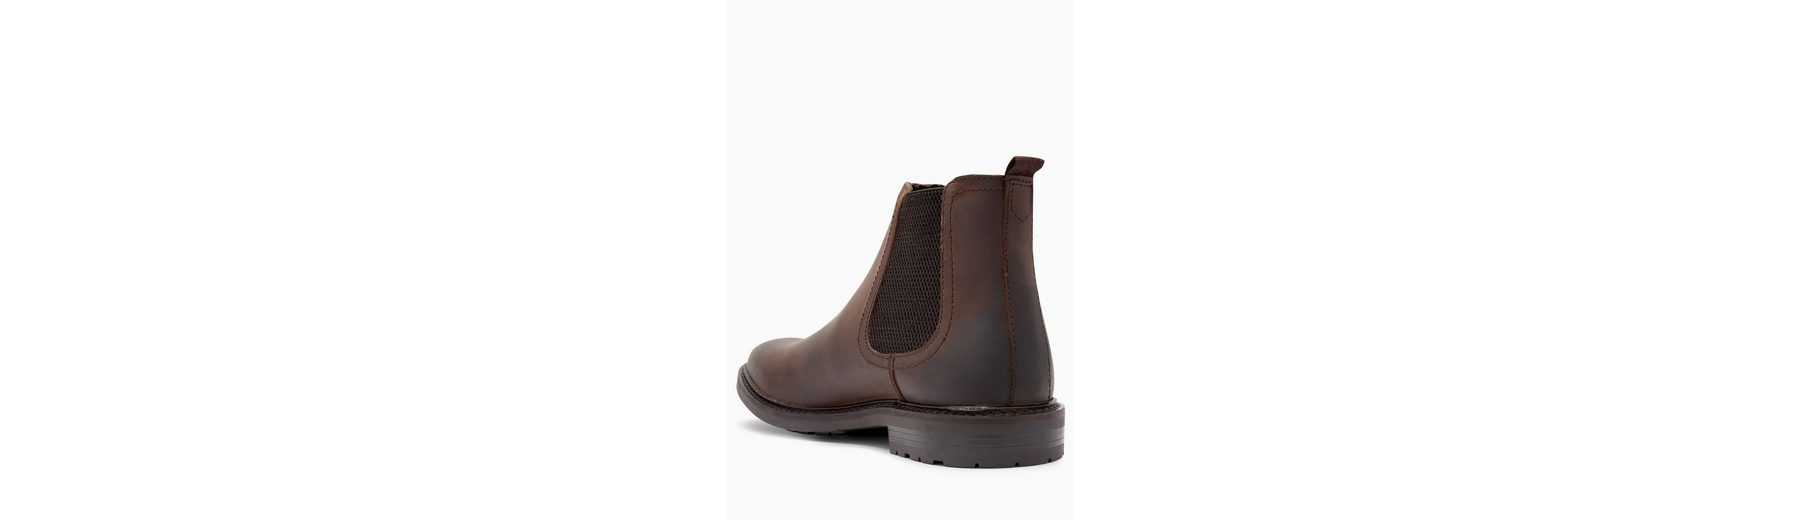 Next Waxy Chelsea-Boot Factory-Outlet-Online Billige Versorgung C494v